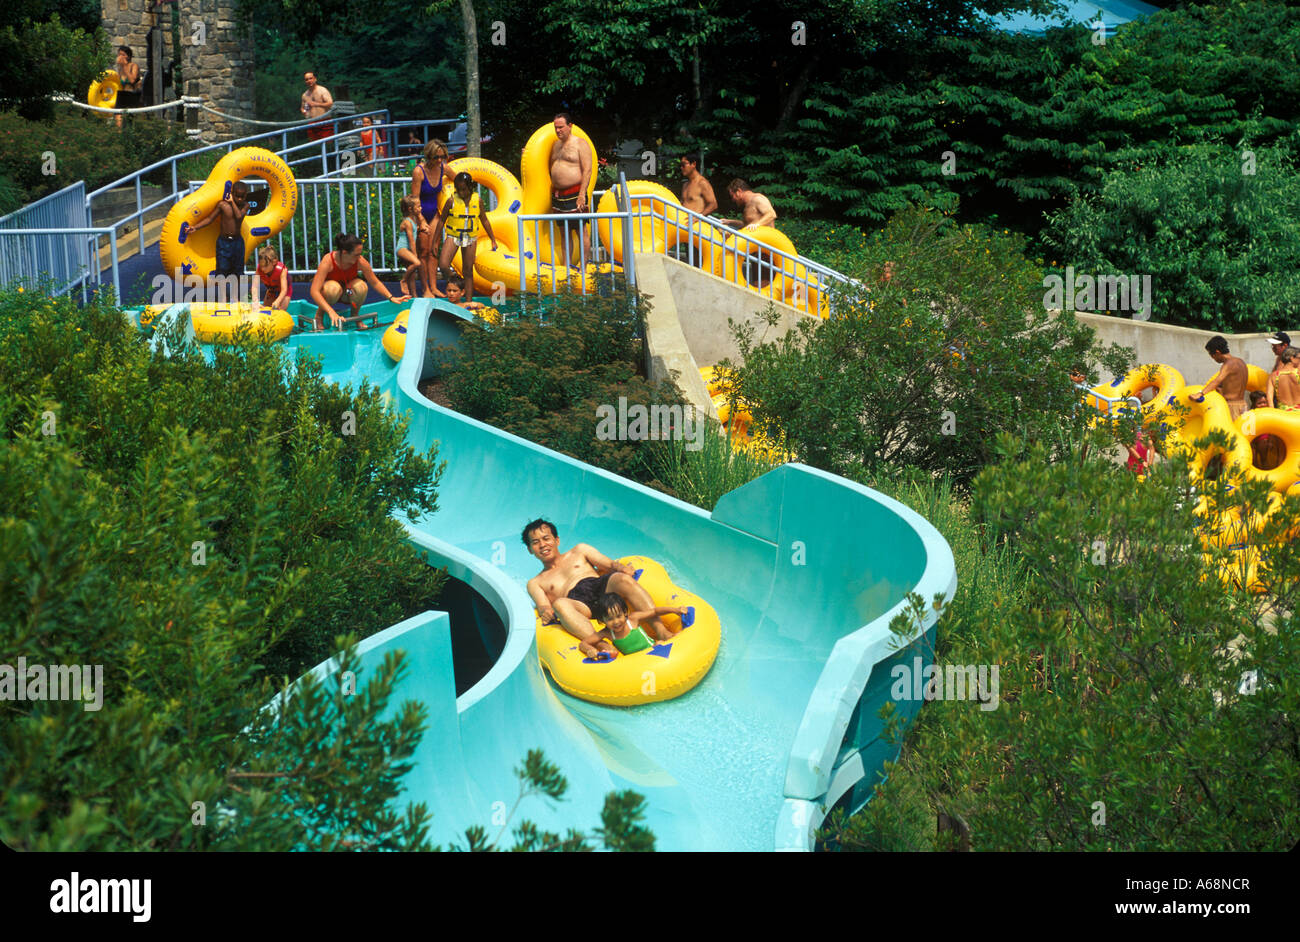 Busch Gardens Stock Photos Busch Gardens Stock Images Alamy